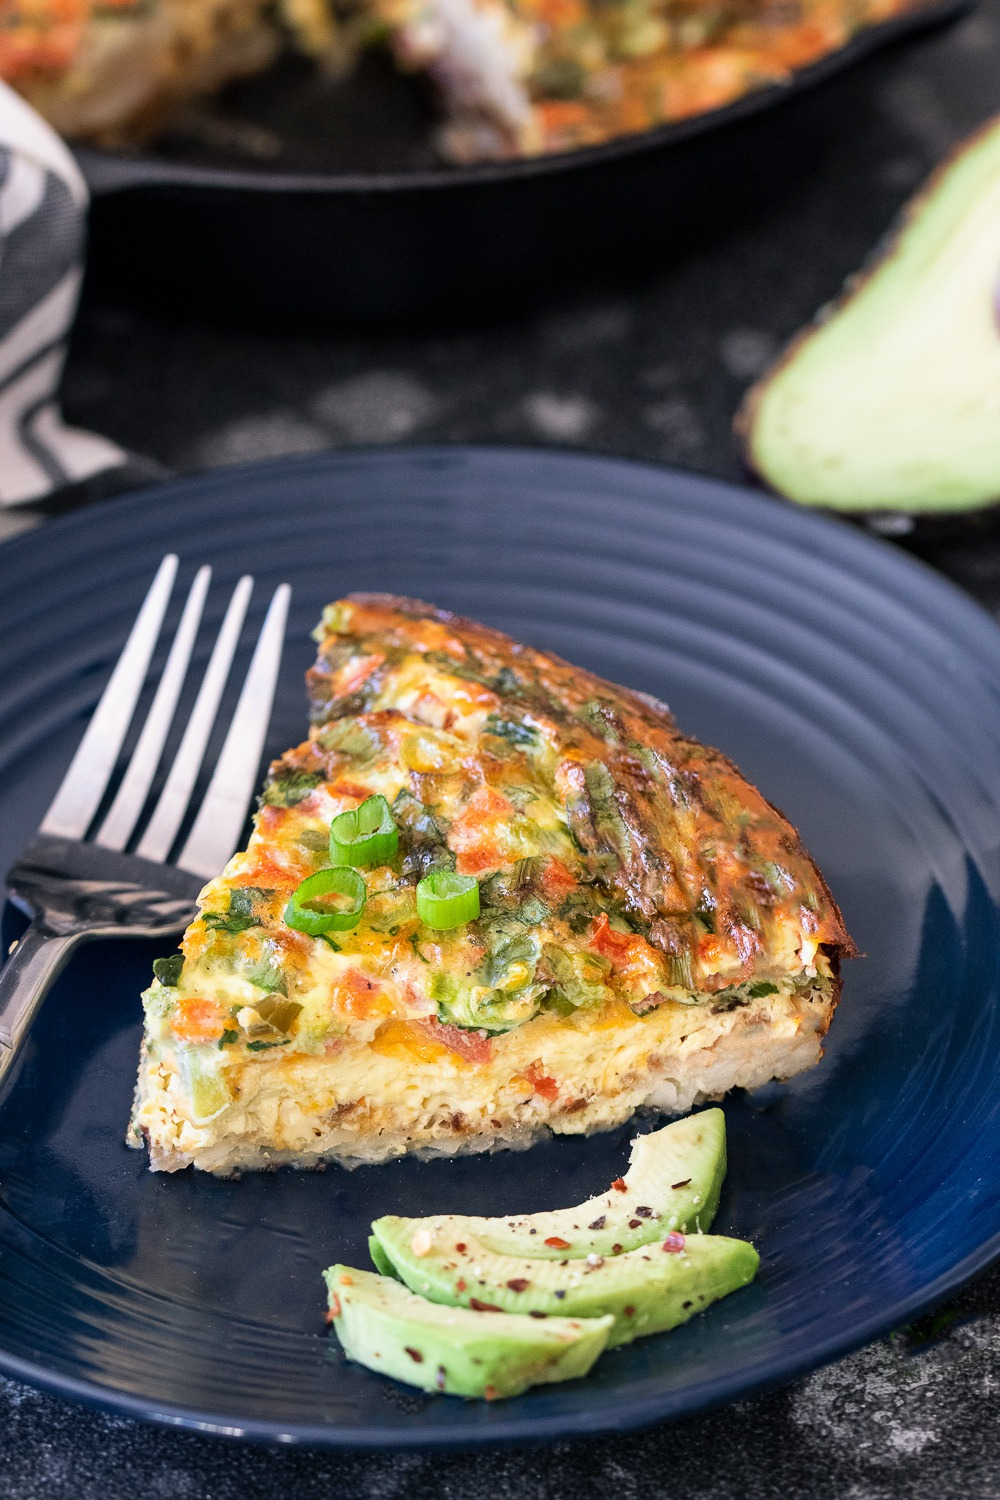 Hash Brown Frittata wedge on a blue plate with fork and avocado slices